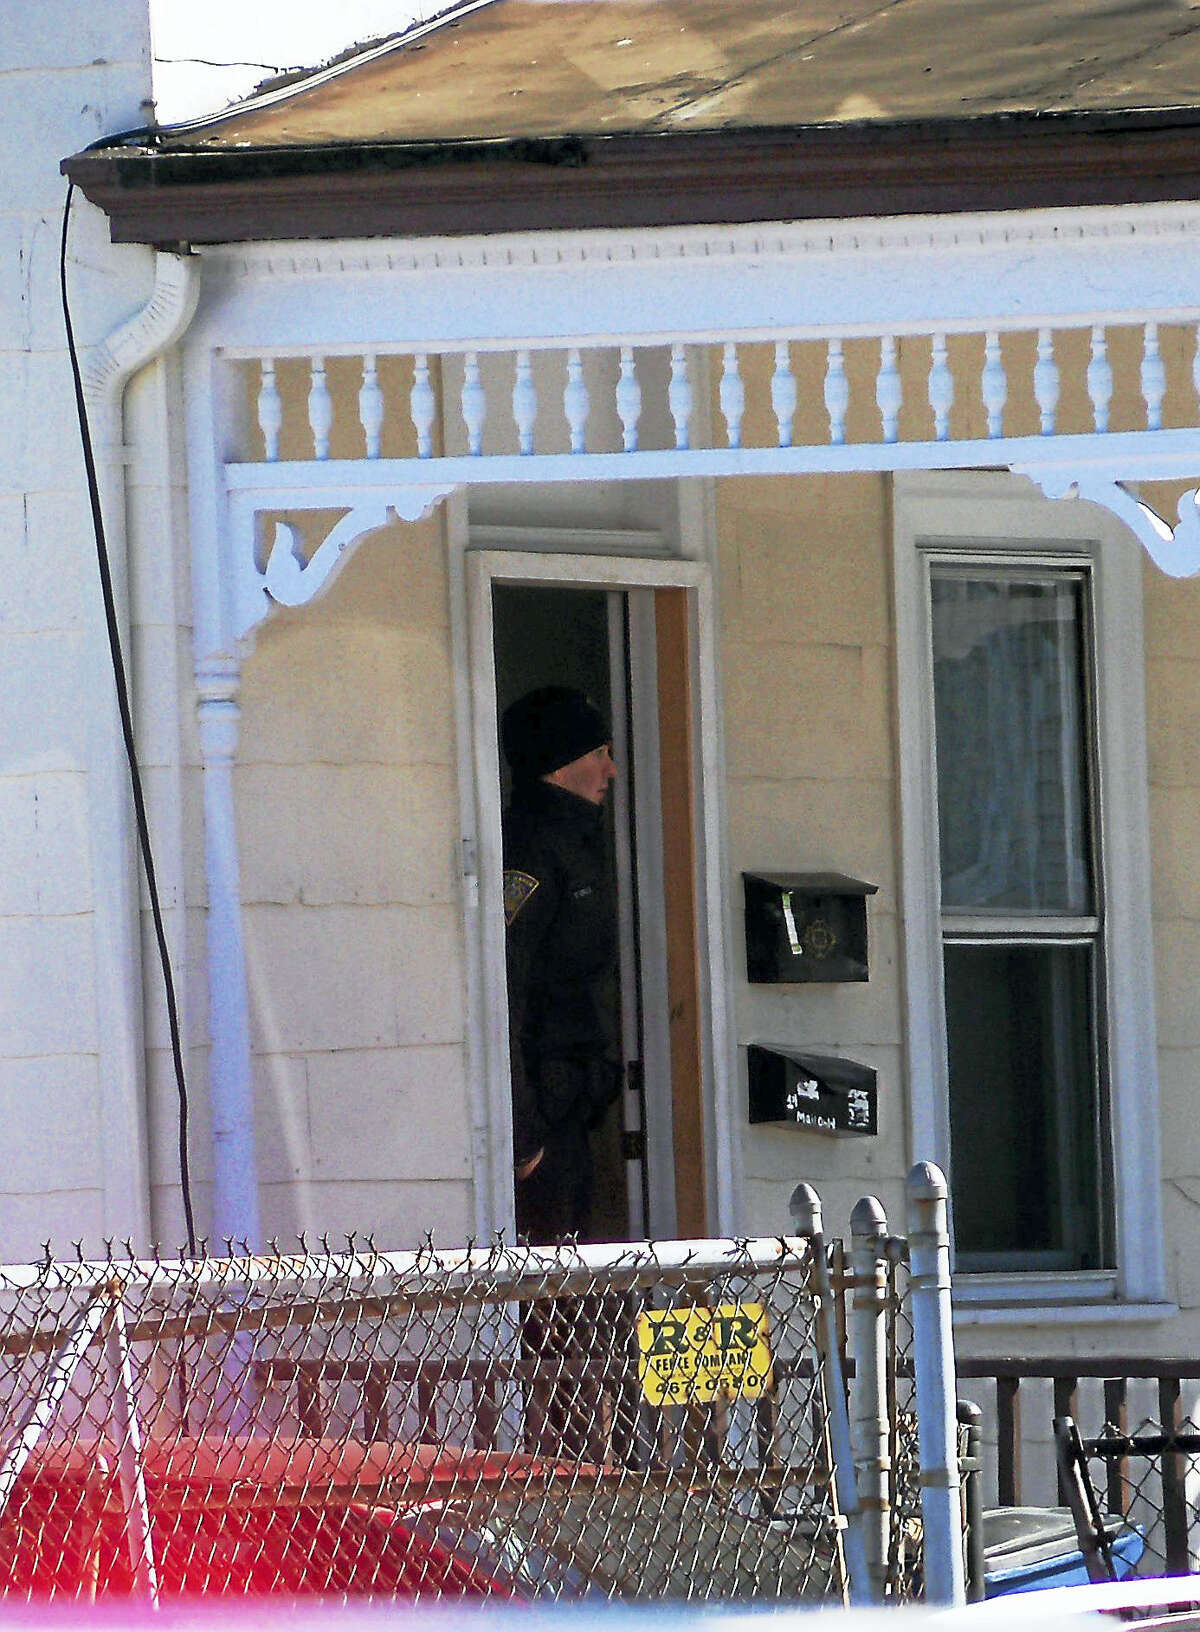 City police are investigating after a New Haven man was shot in the leg late Friday morning. Police could be seen gathering clues in a home at 197 James St. early Friday afternoon.